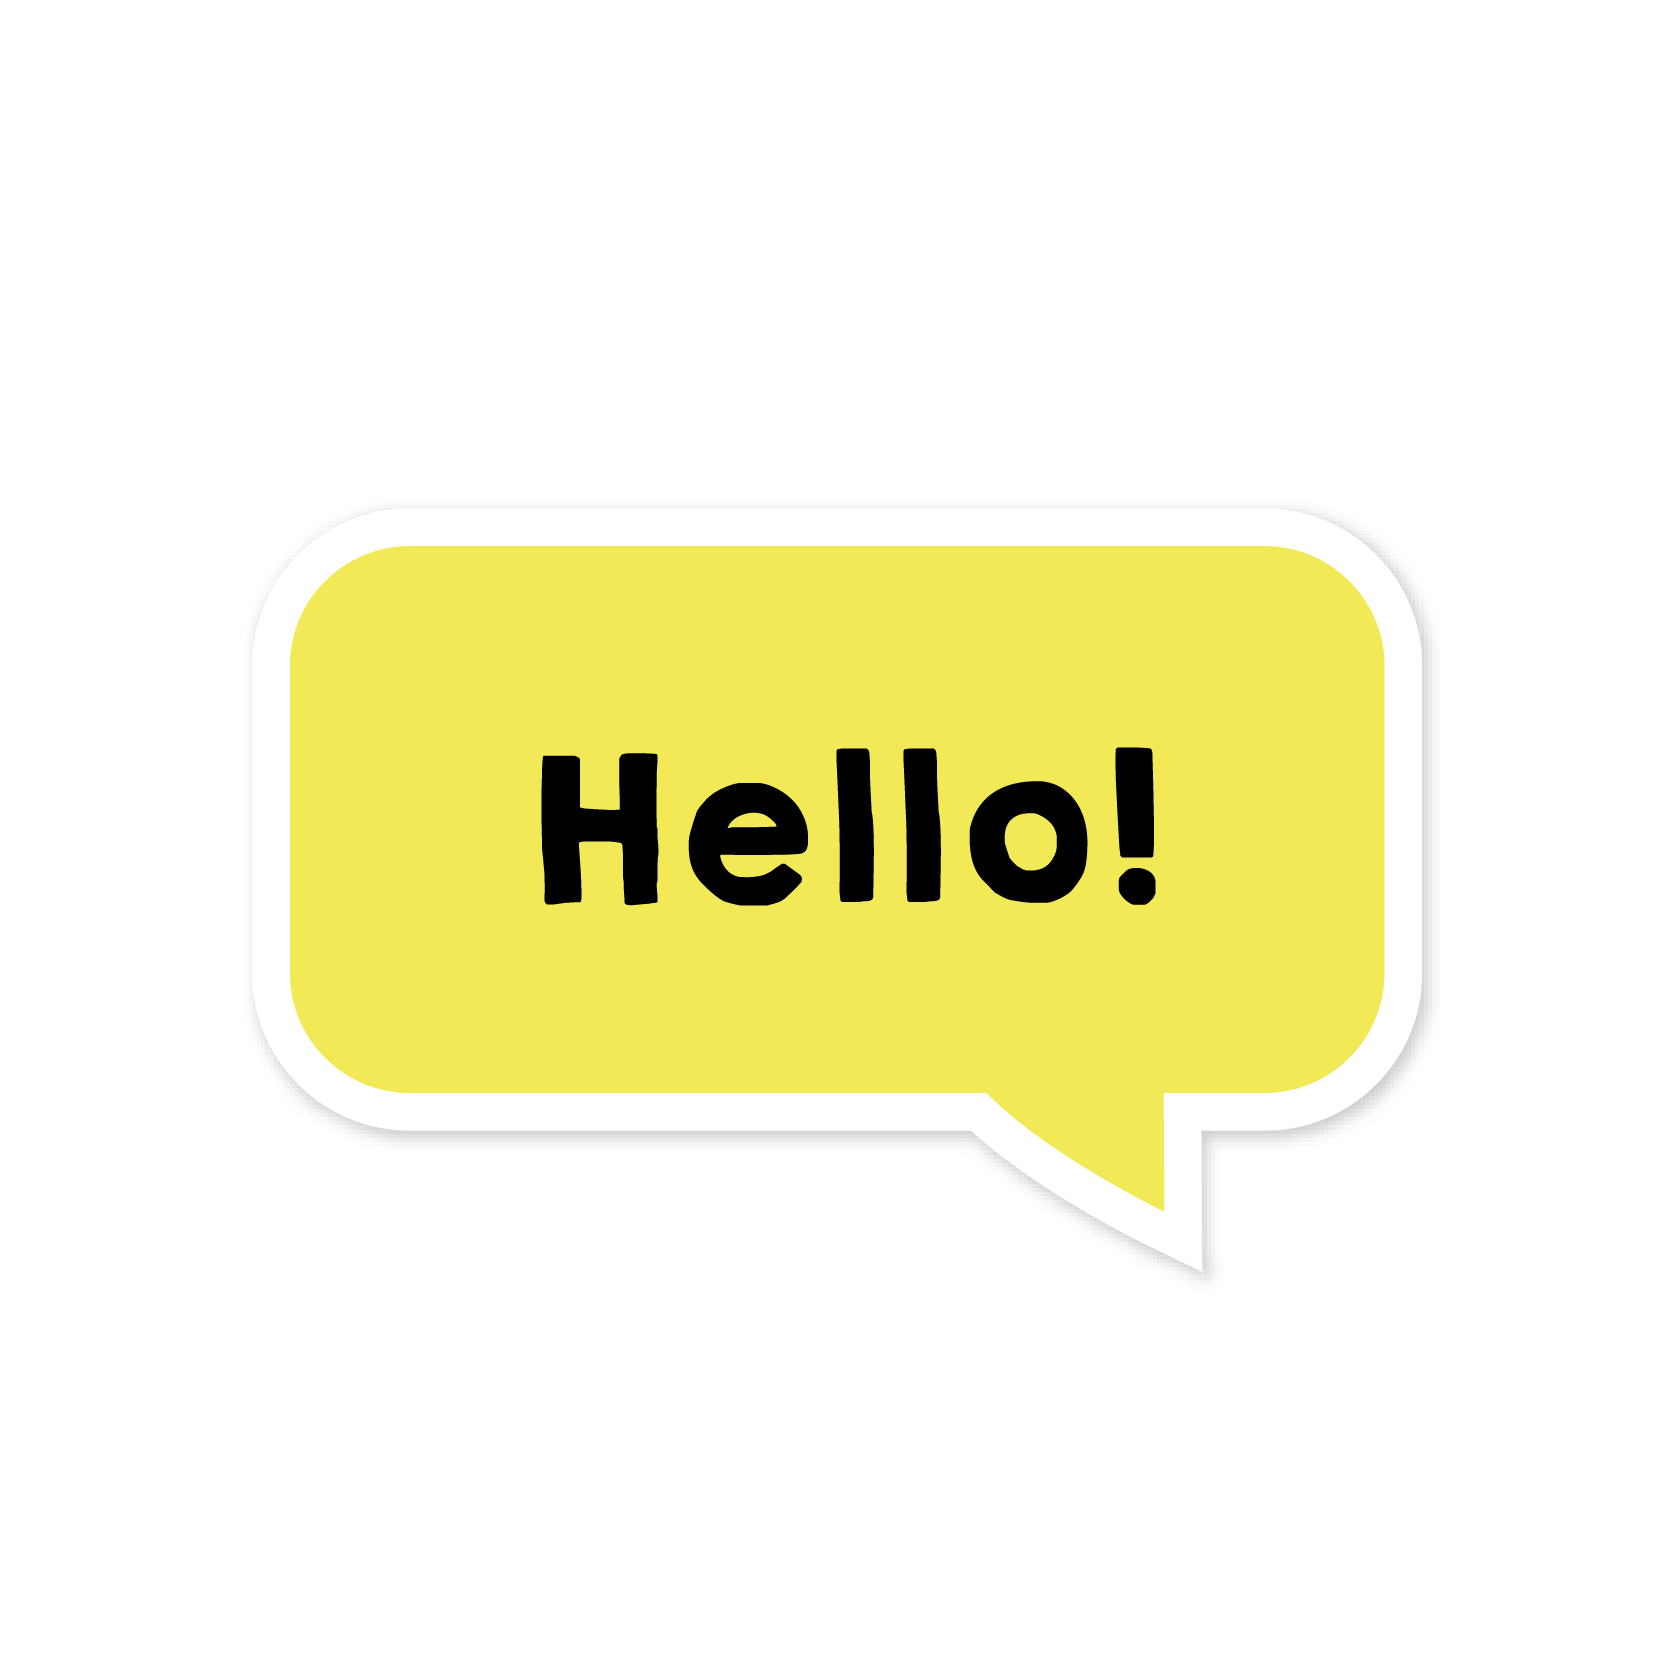 A yellow sticker that says 'Hello!'